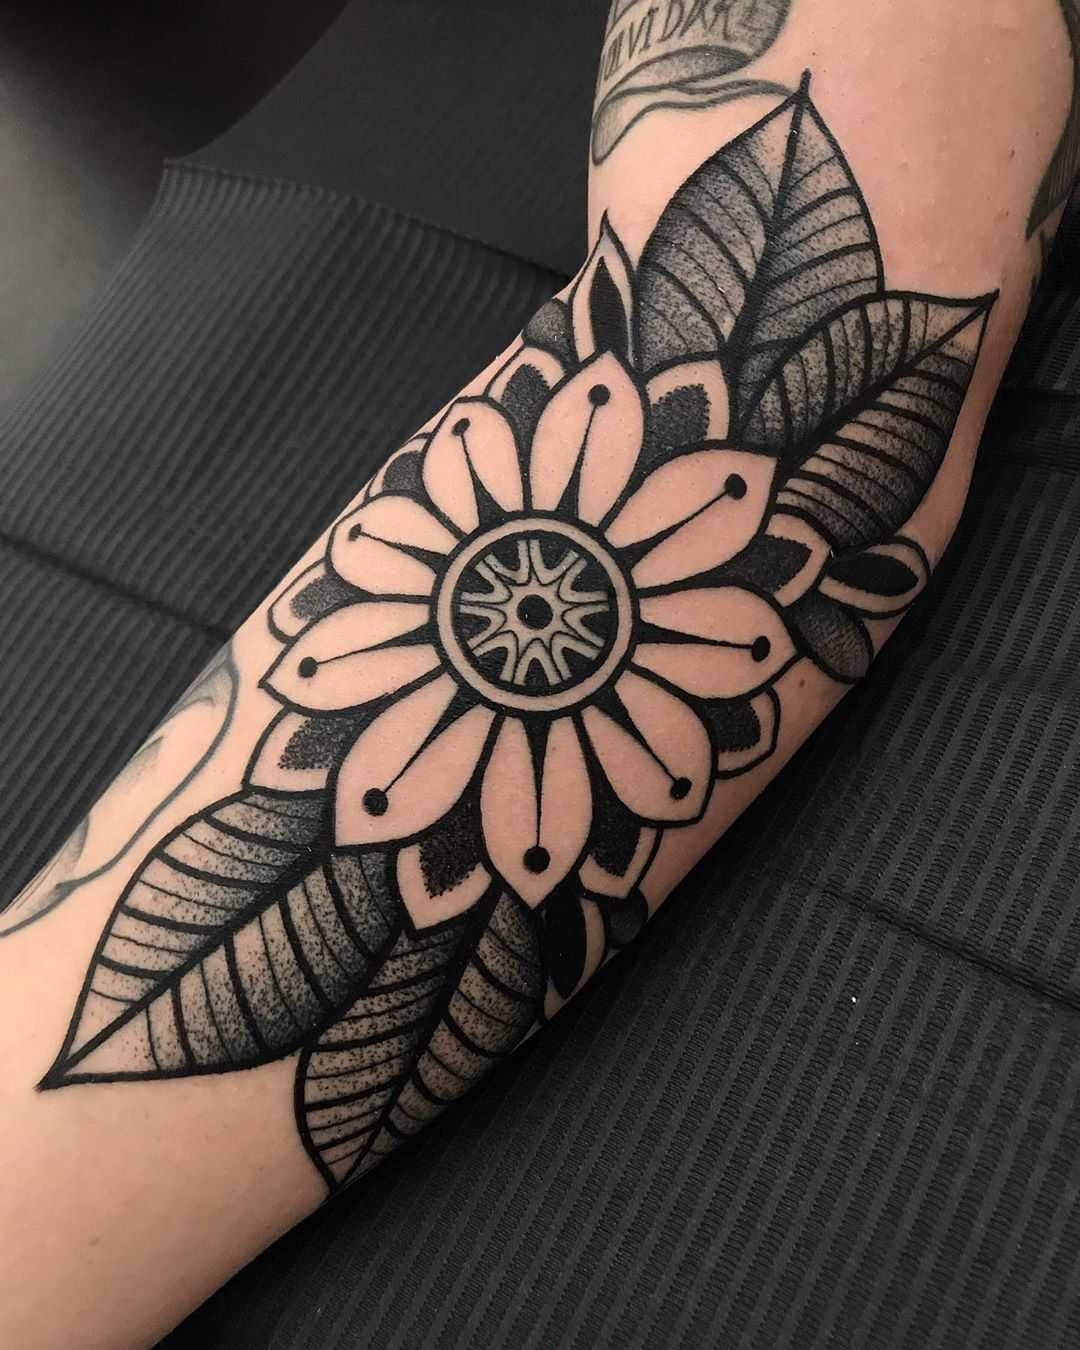 Simple black and white by tattooist Alejo GMZ